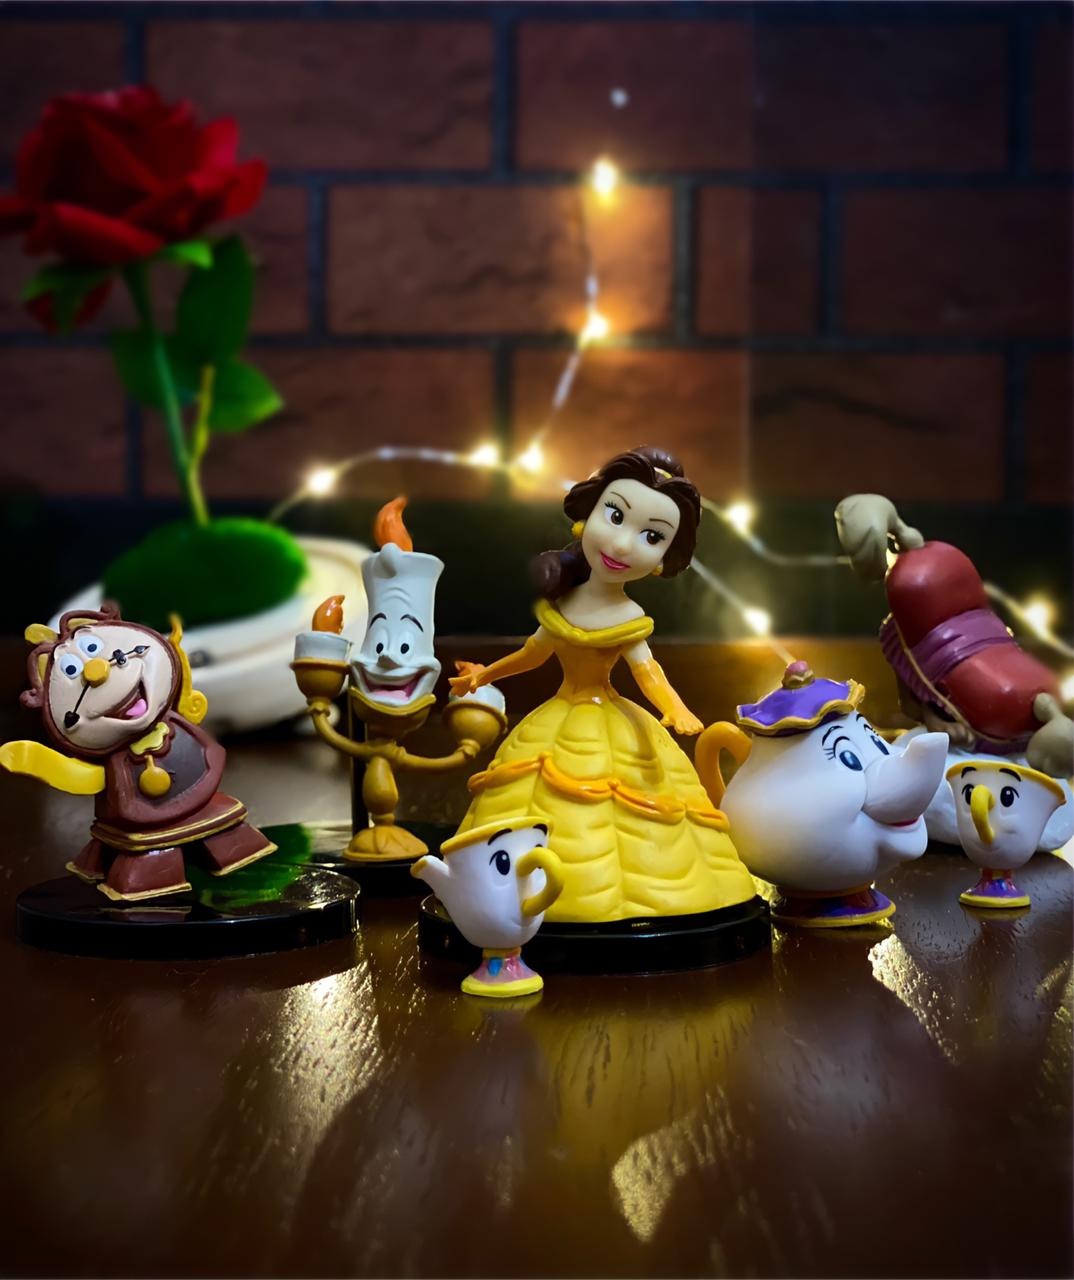 Kit Com 5 Miniaturas Colecionáveis A Bela e a Fera Beauty And The Beast - Disney - 8cm